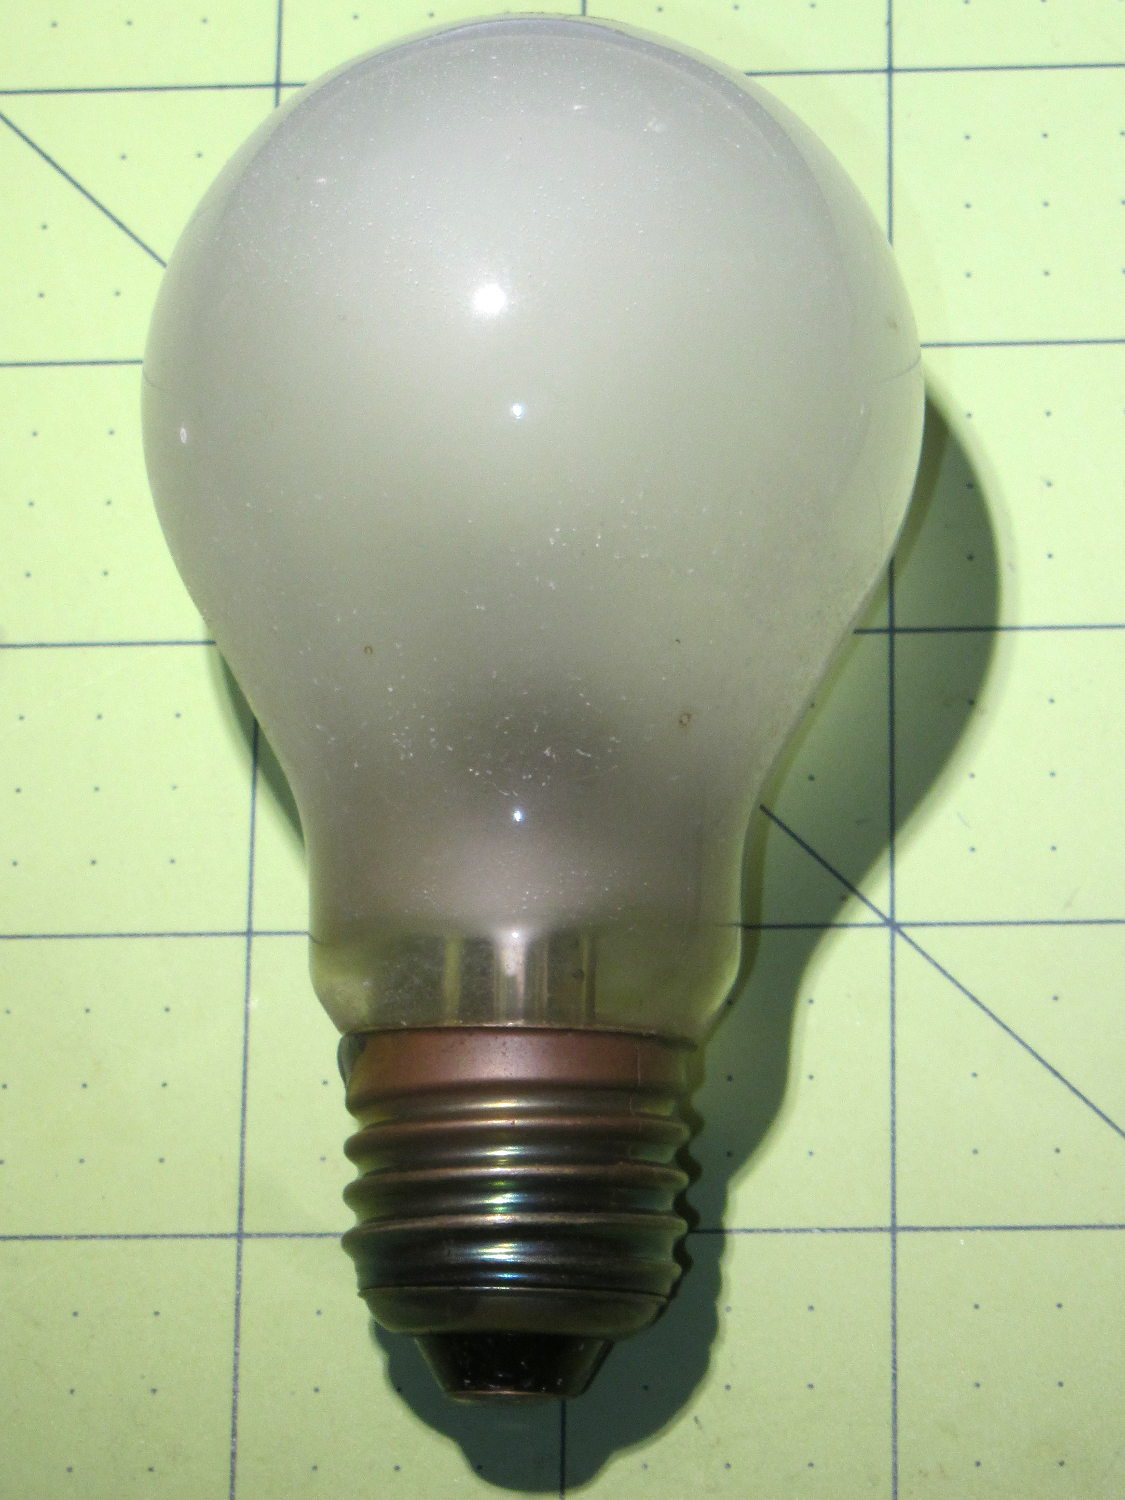 Some Things Last 100 W Incandescent Bulb The Smell Of Molten Projects In The Morning